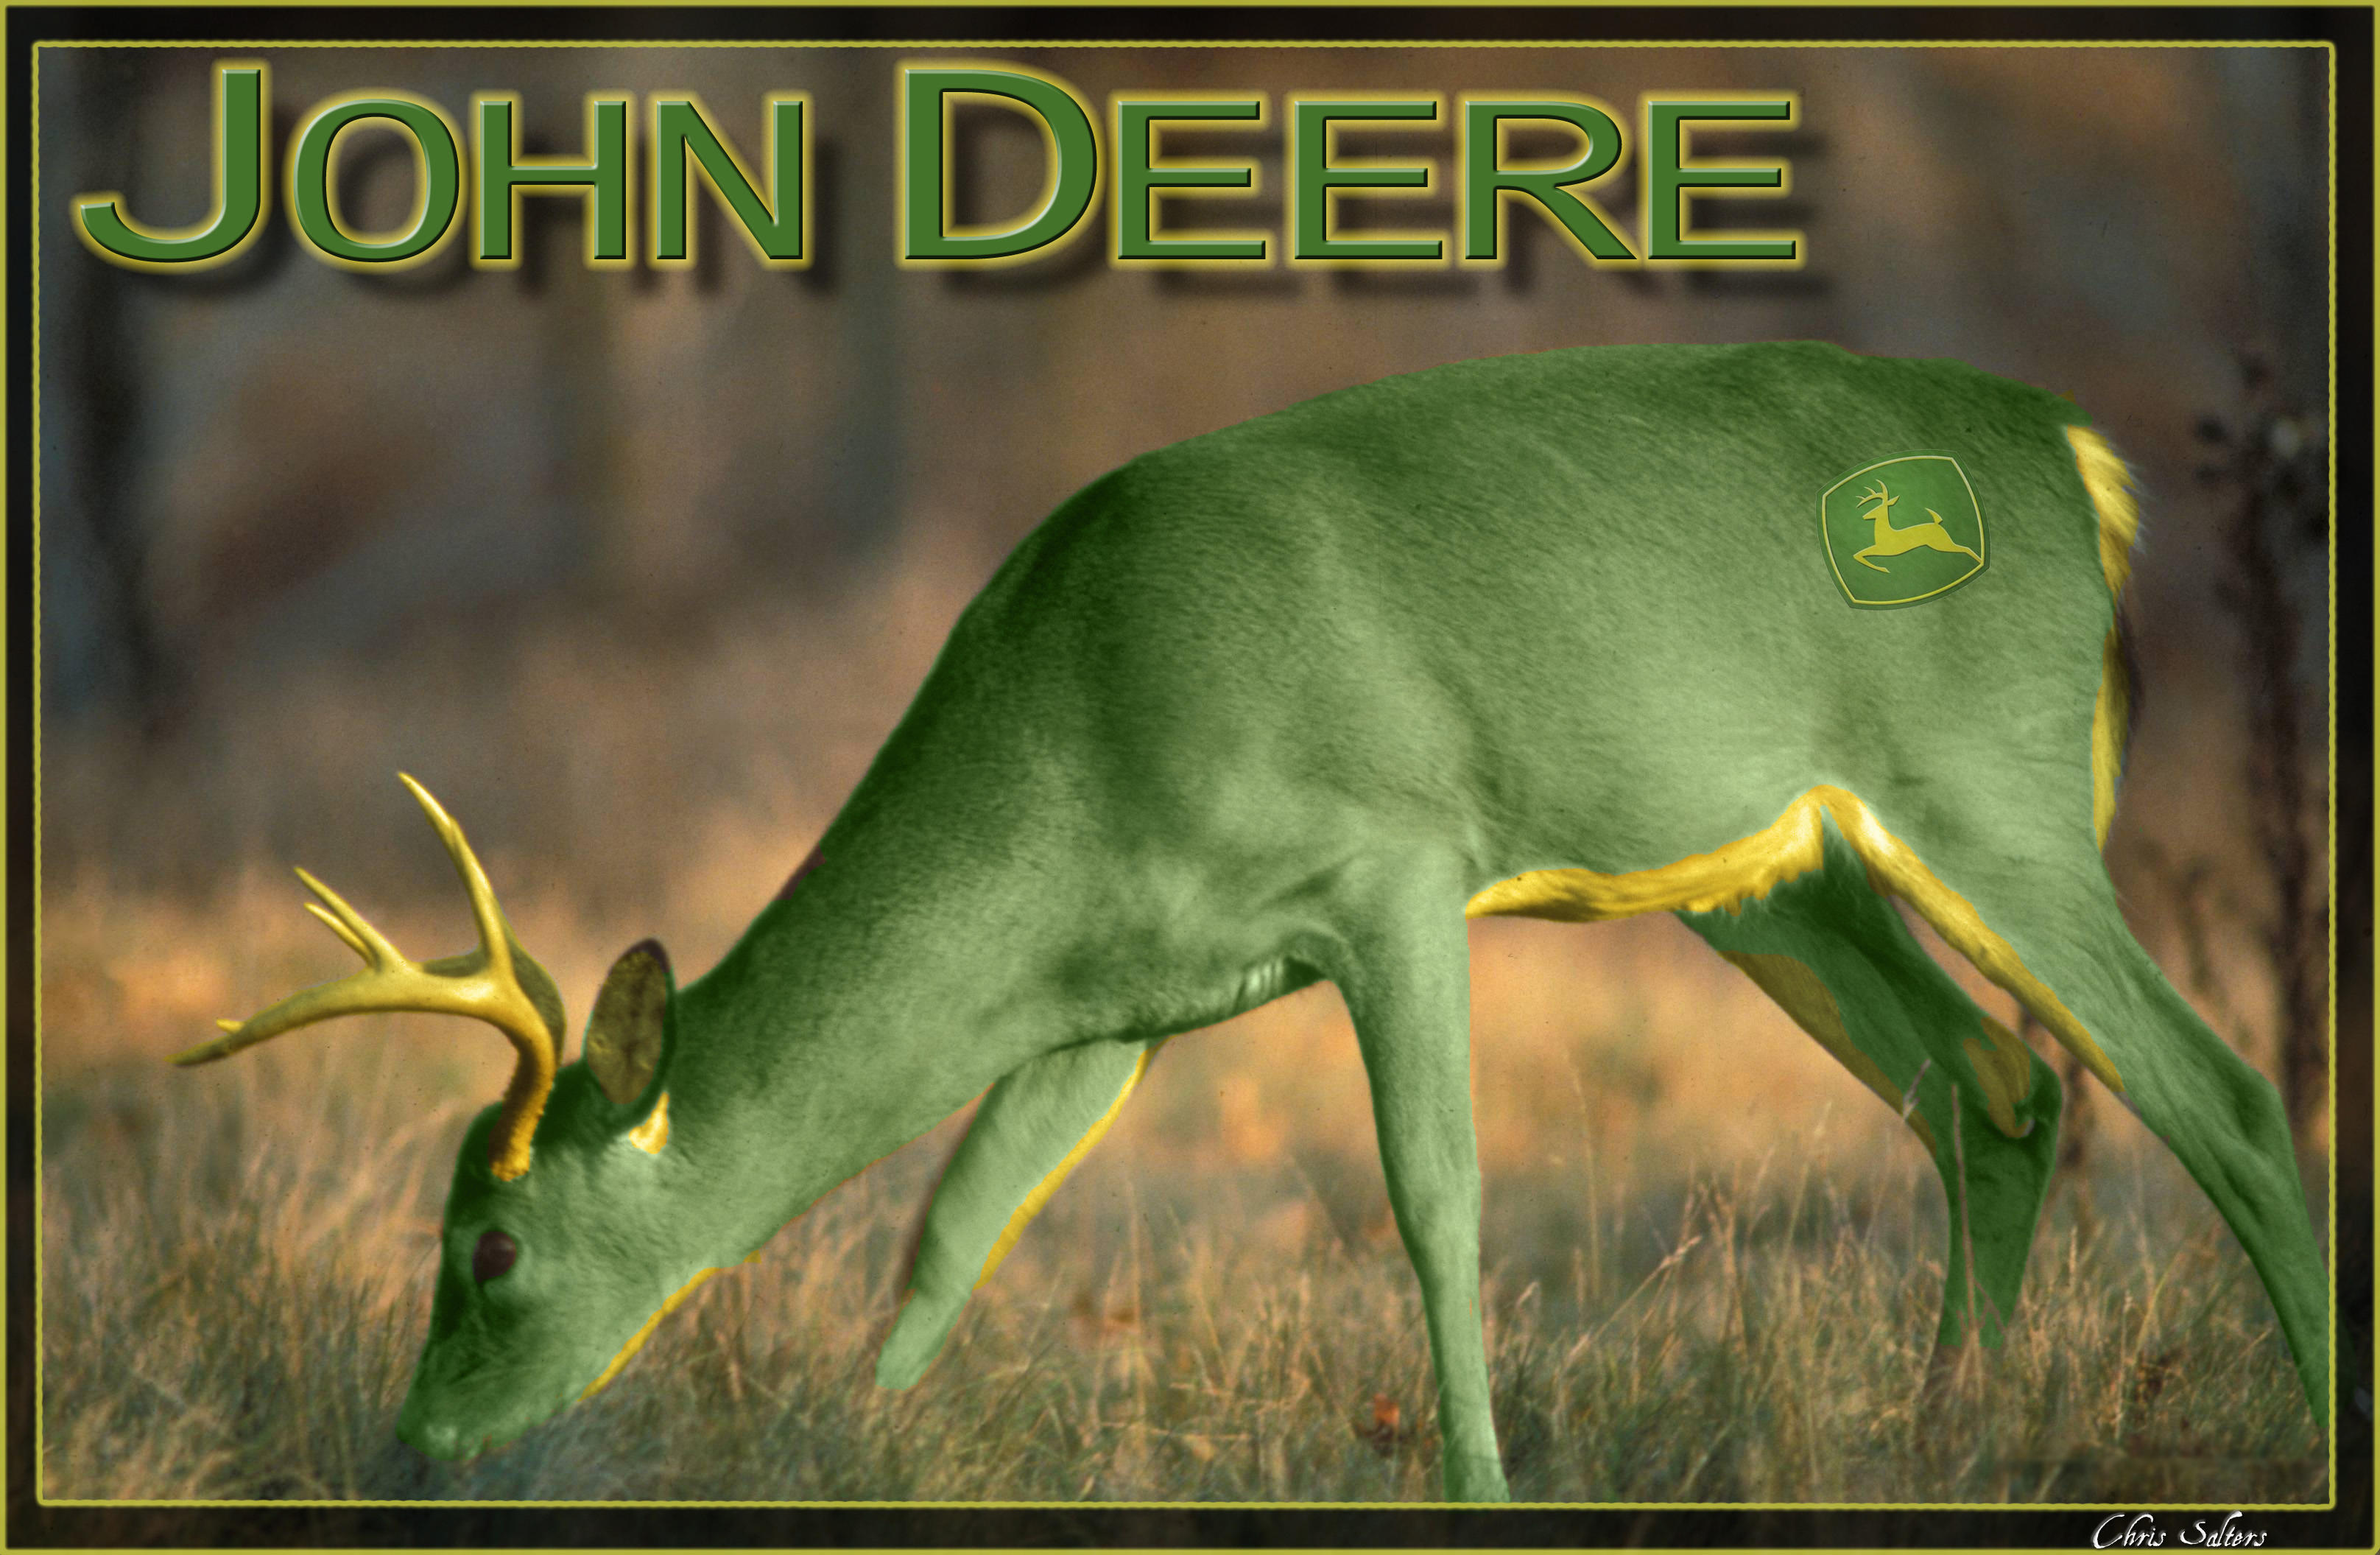 The Real John Deere by bh06there on DeviantArt